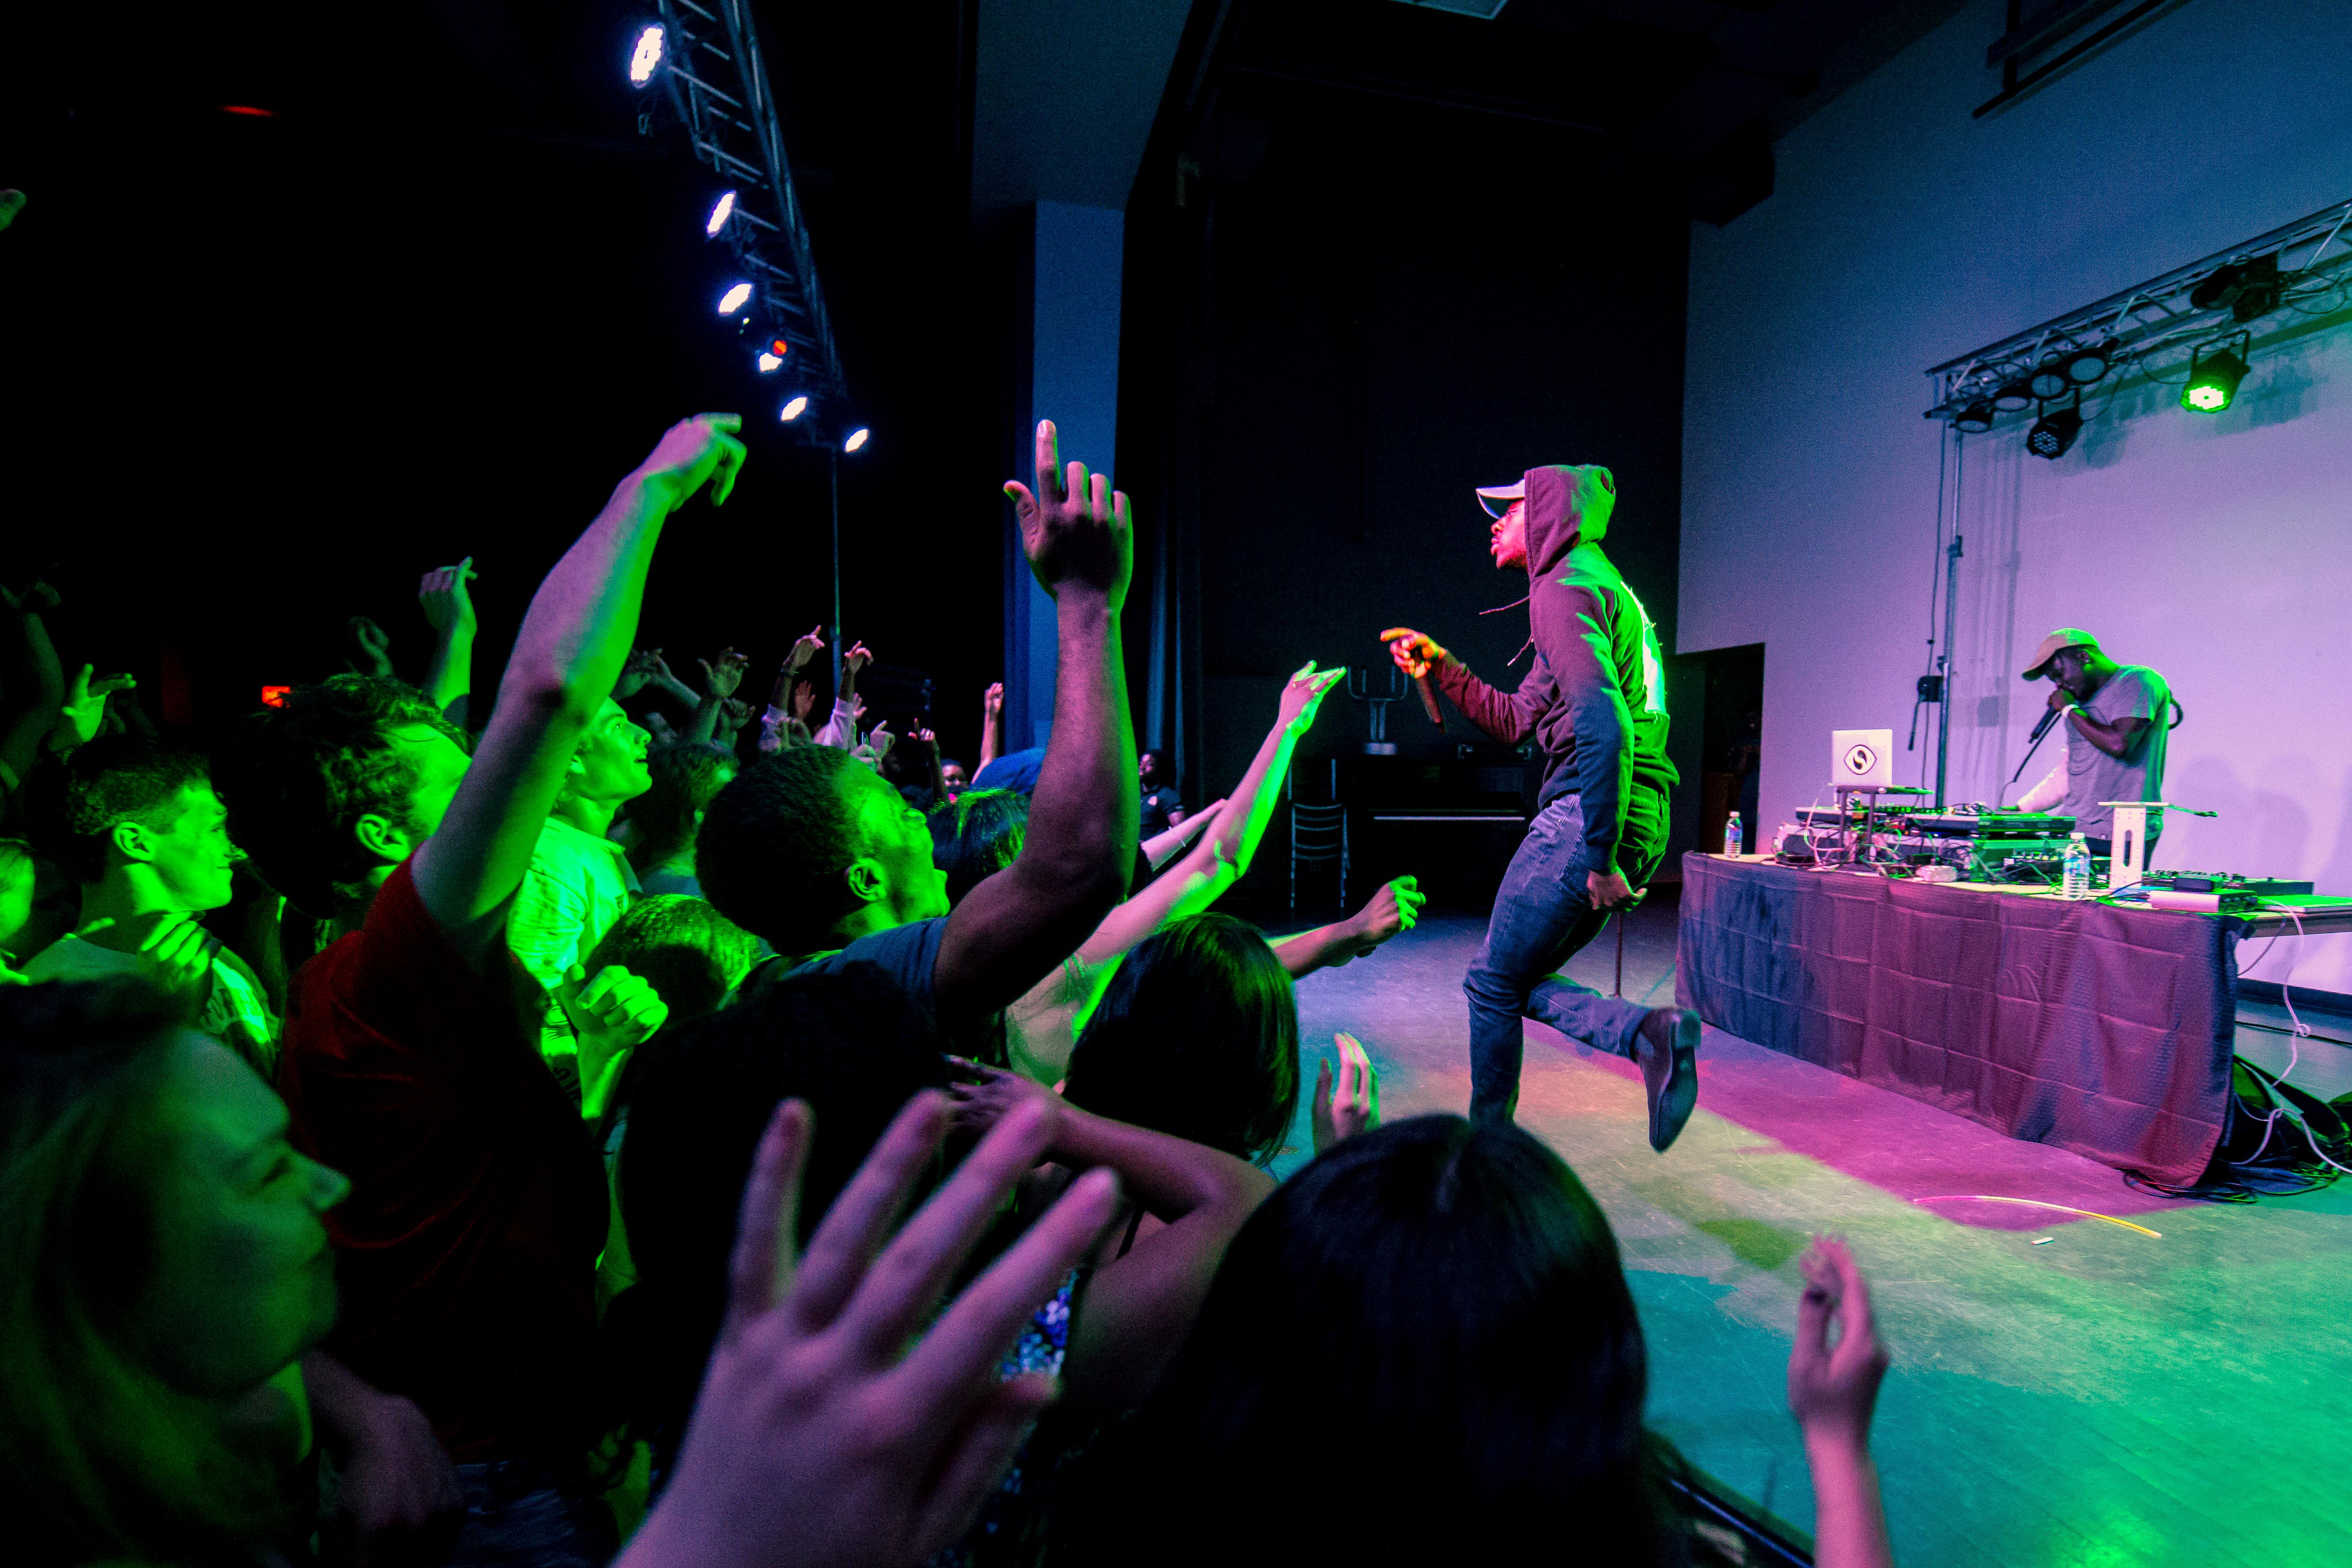 GoldLink perfromed in Harris last Friday night, May 6, to an enthusiastic crowd. Photo by Alberto Vazquez